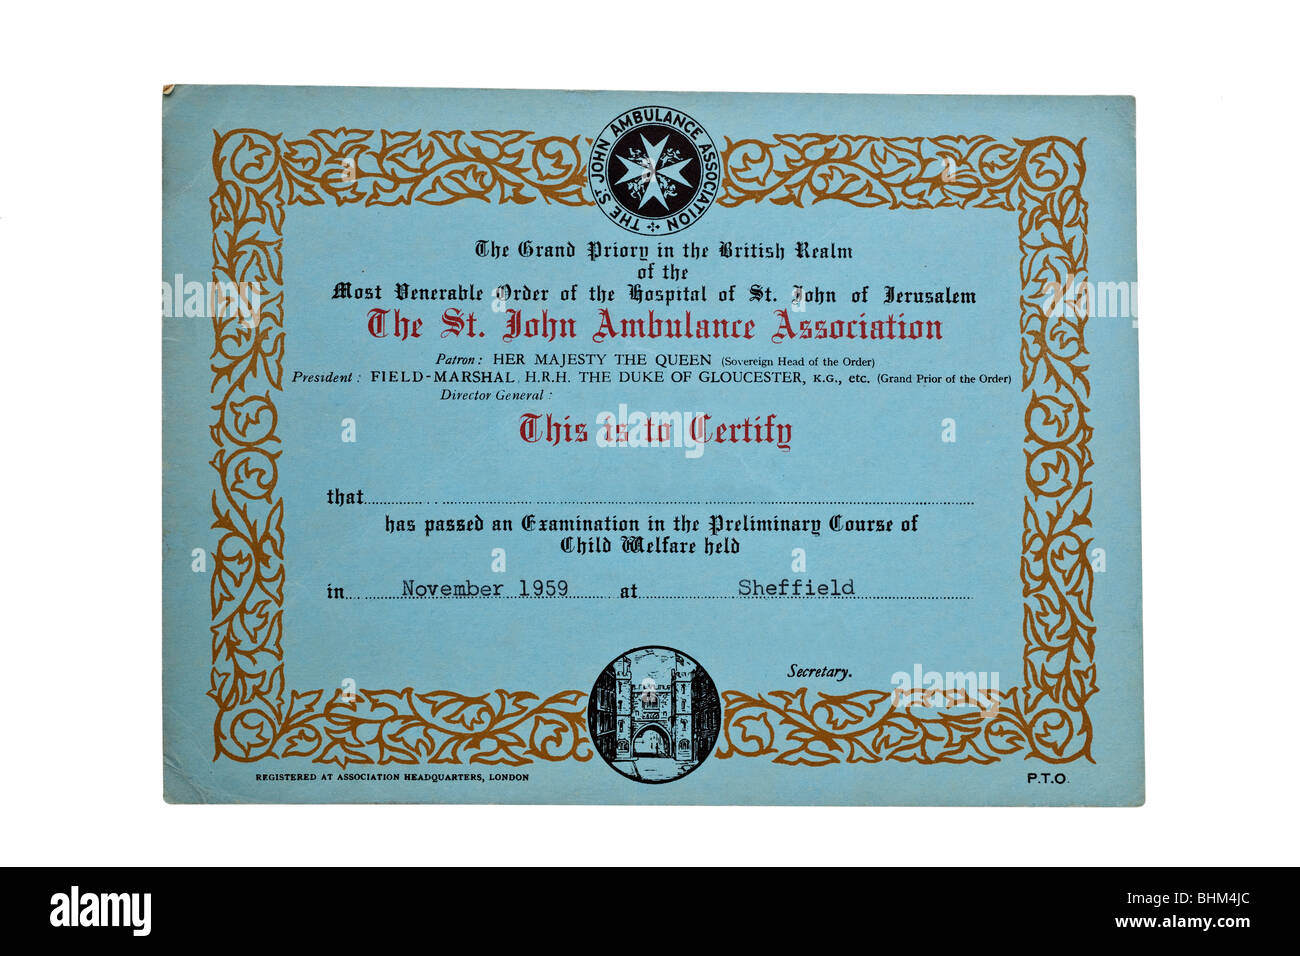 St John Ambulance Certificat de l'Association Novembre 1959 Photo Stock